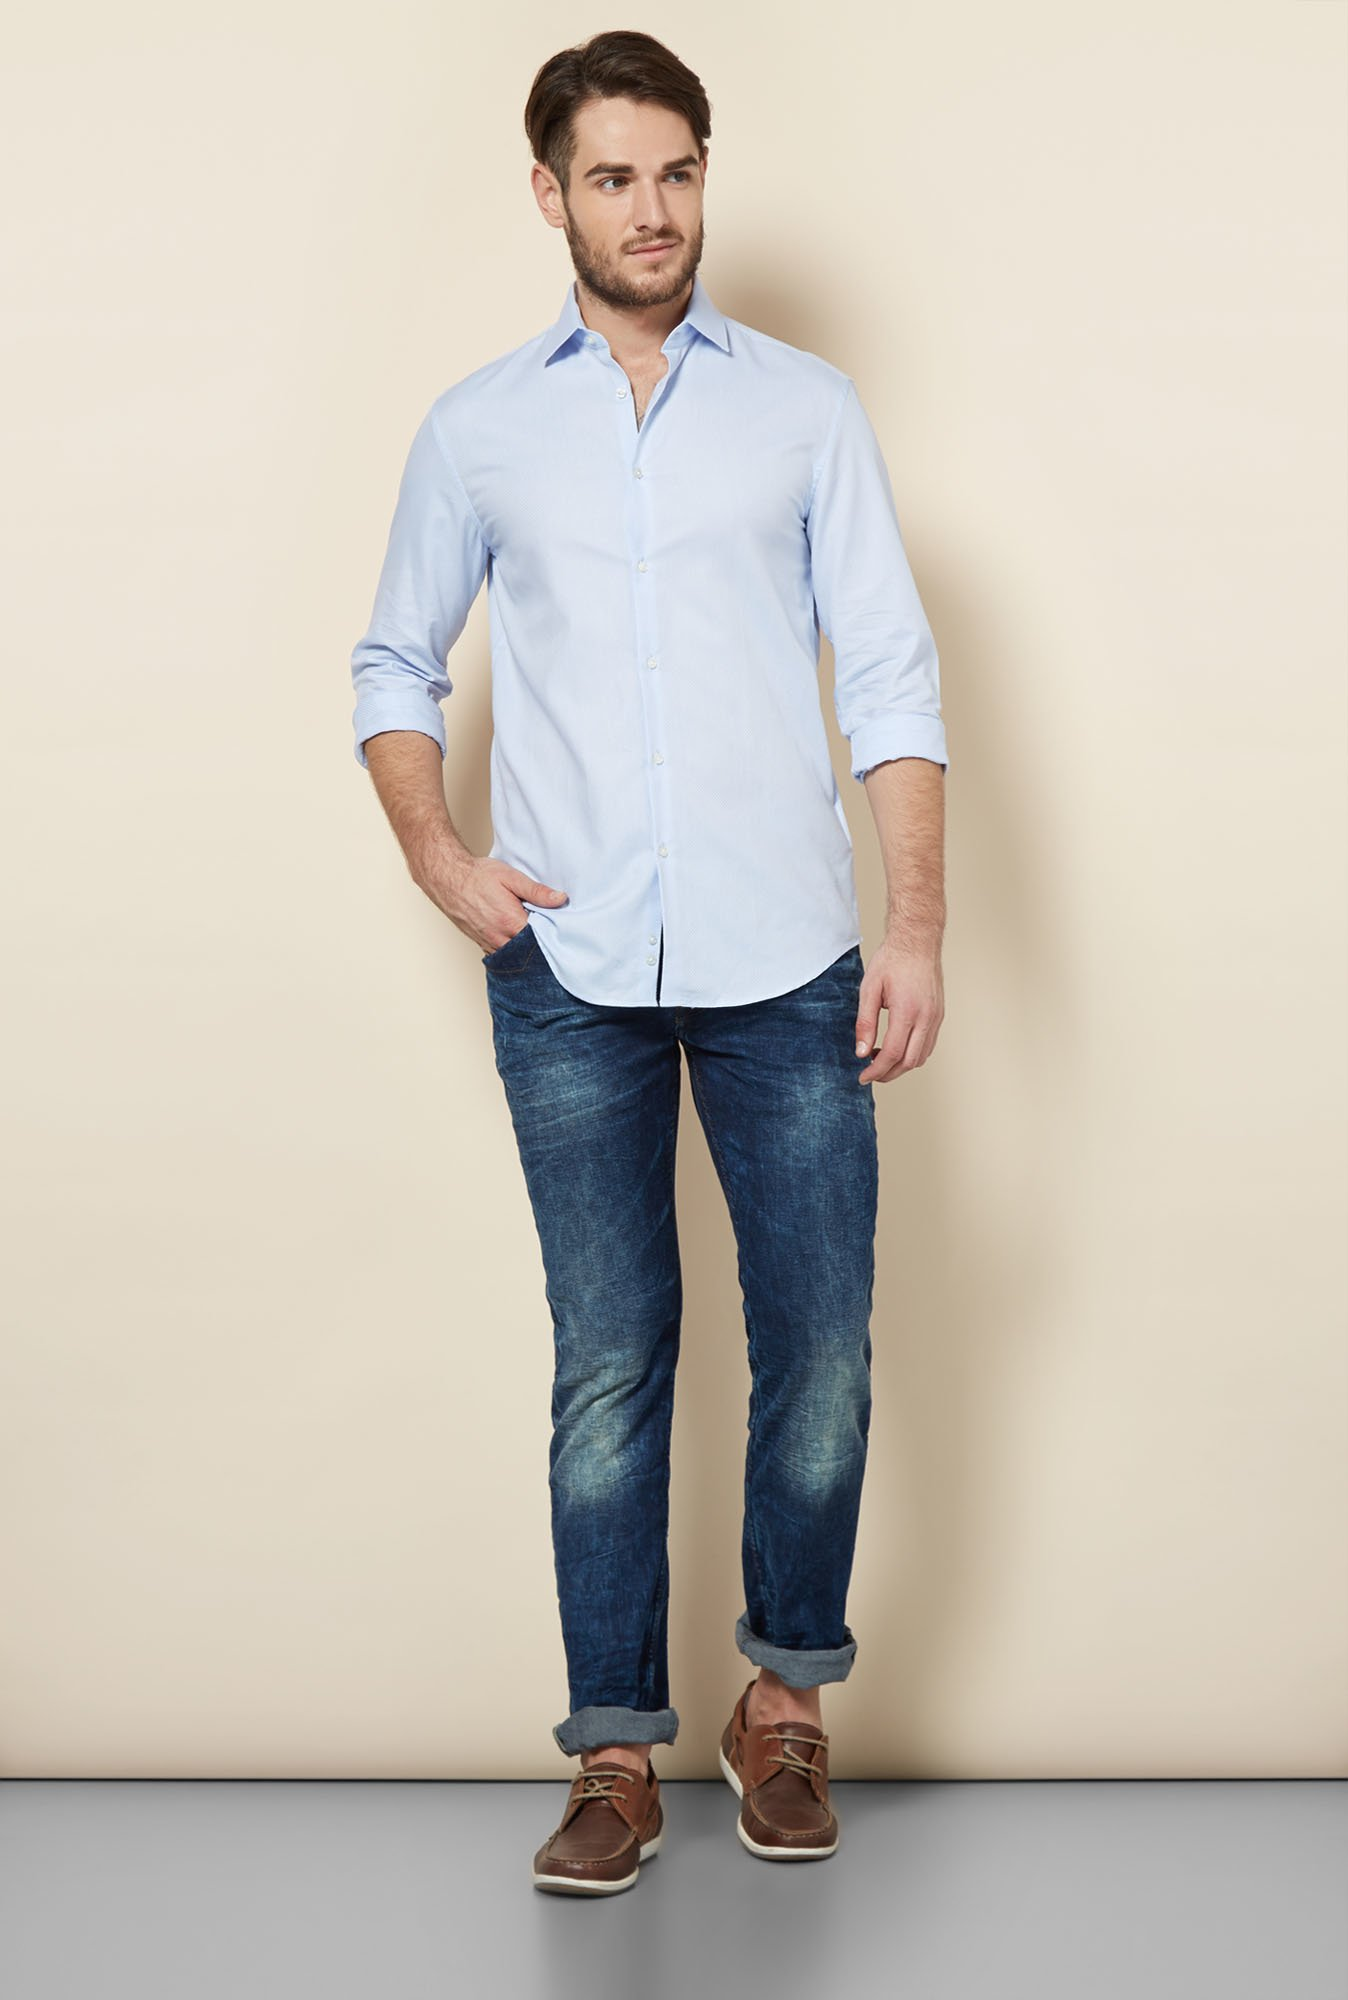 celio* Blue Self Printed Slim Fit Casual Shirt